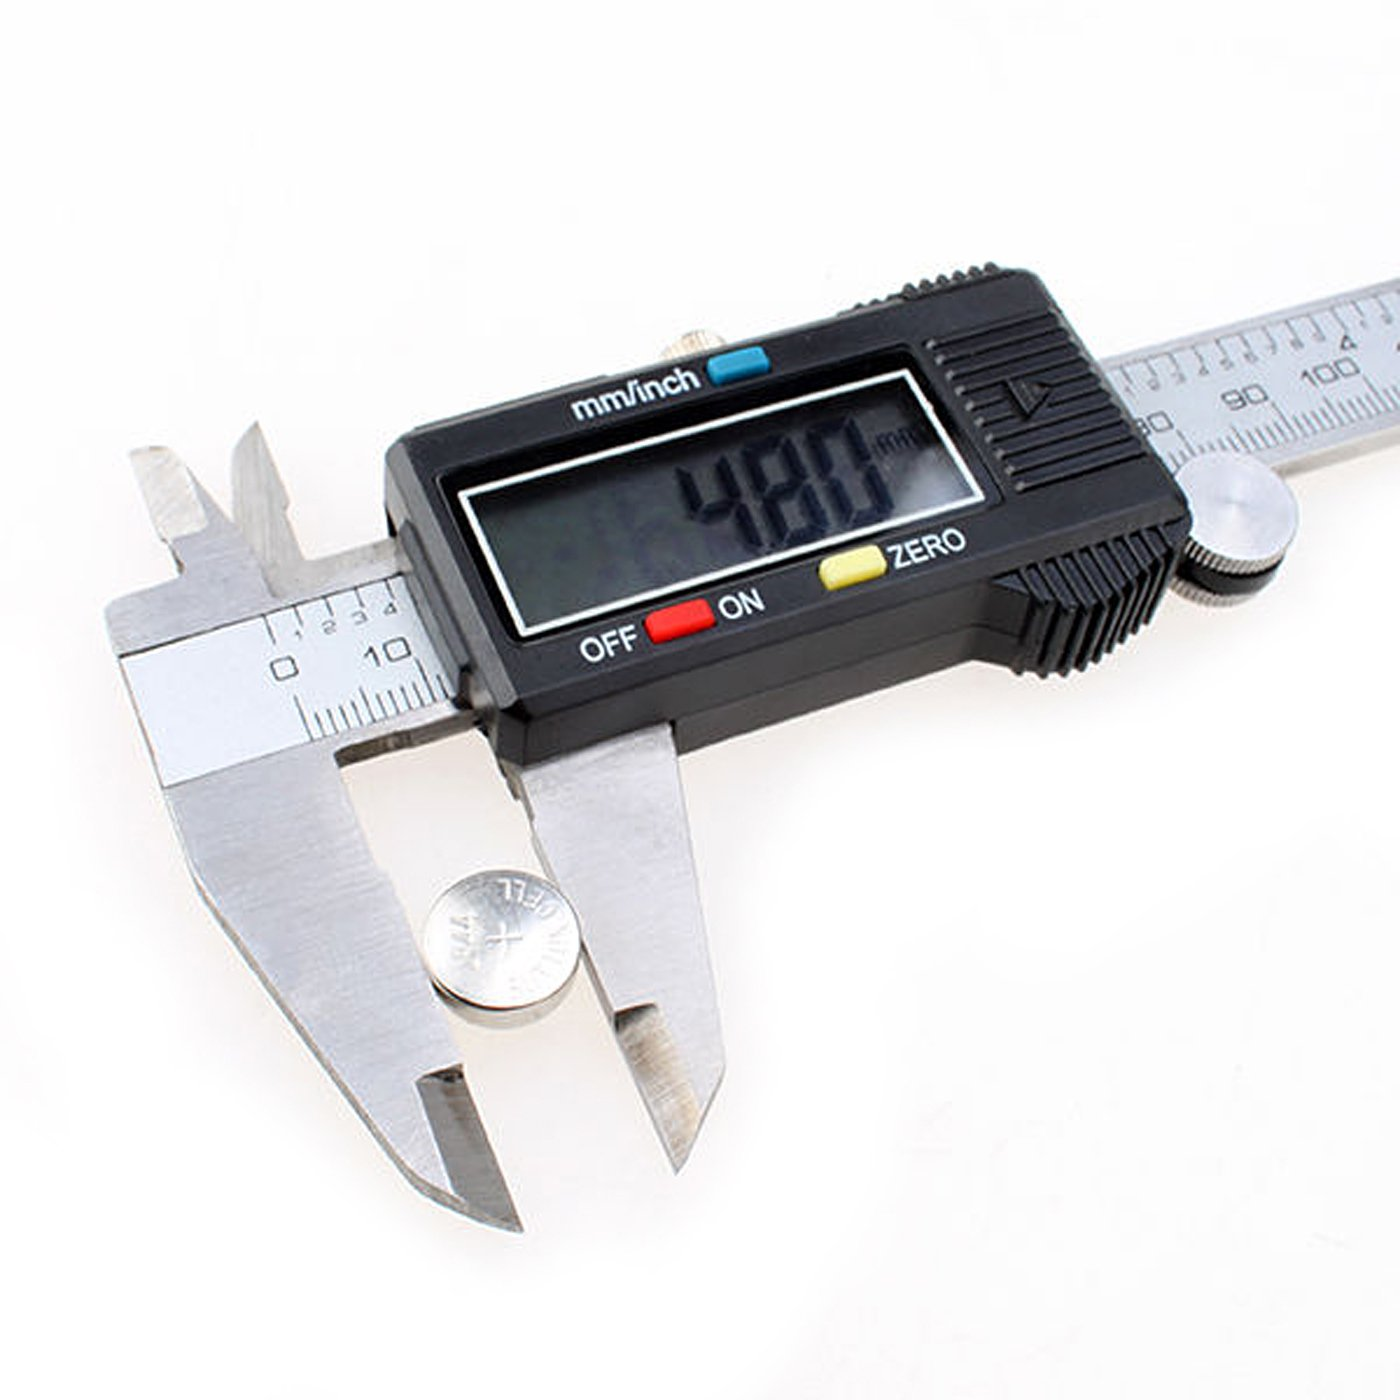 Electronic Digital Caliper Vernier Measuring Tool SAE to Metric Conversion Stainless Steel Measuring Tool with LCD Display (6 in / 150 mm)